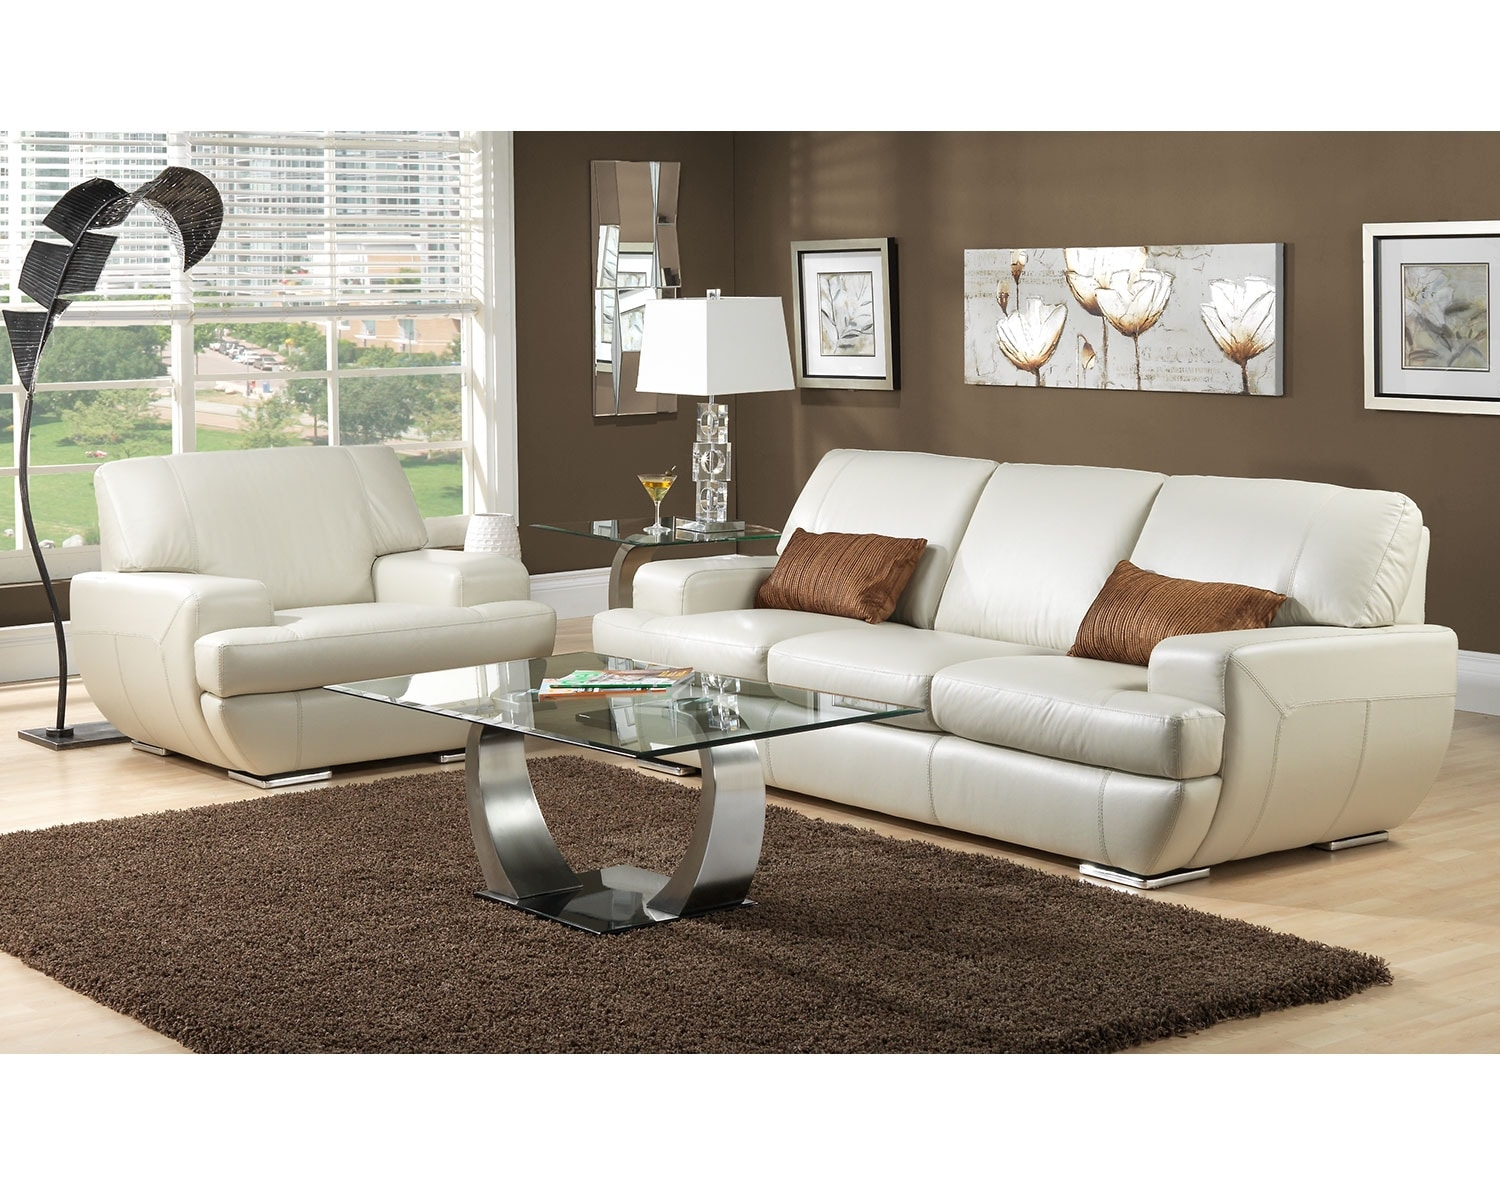 Off White Living Room Furniture off white sofa